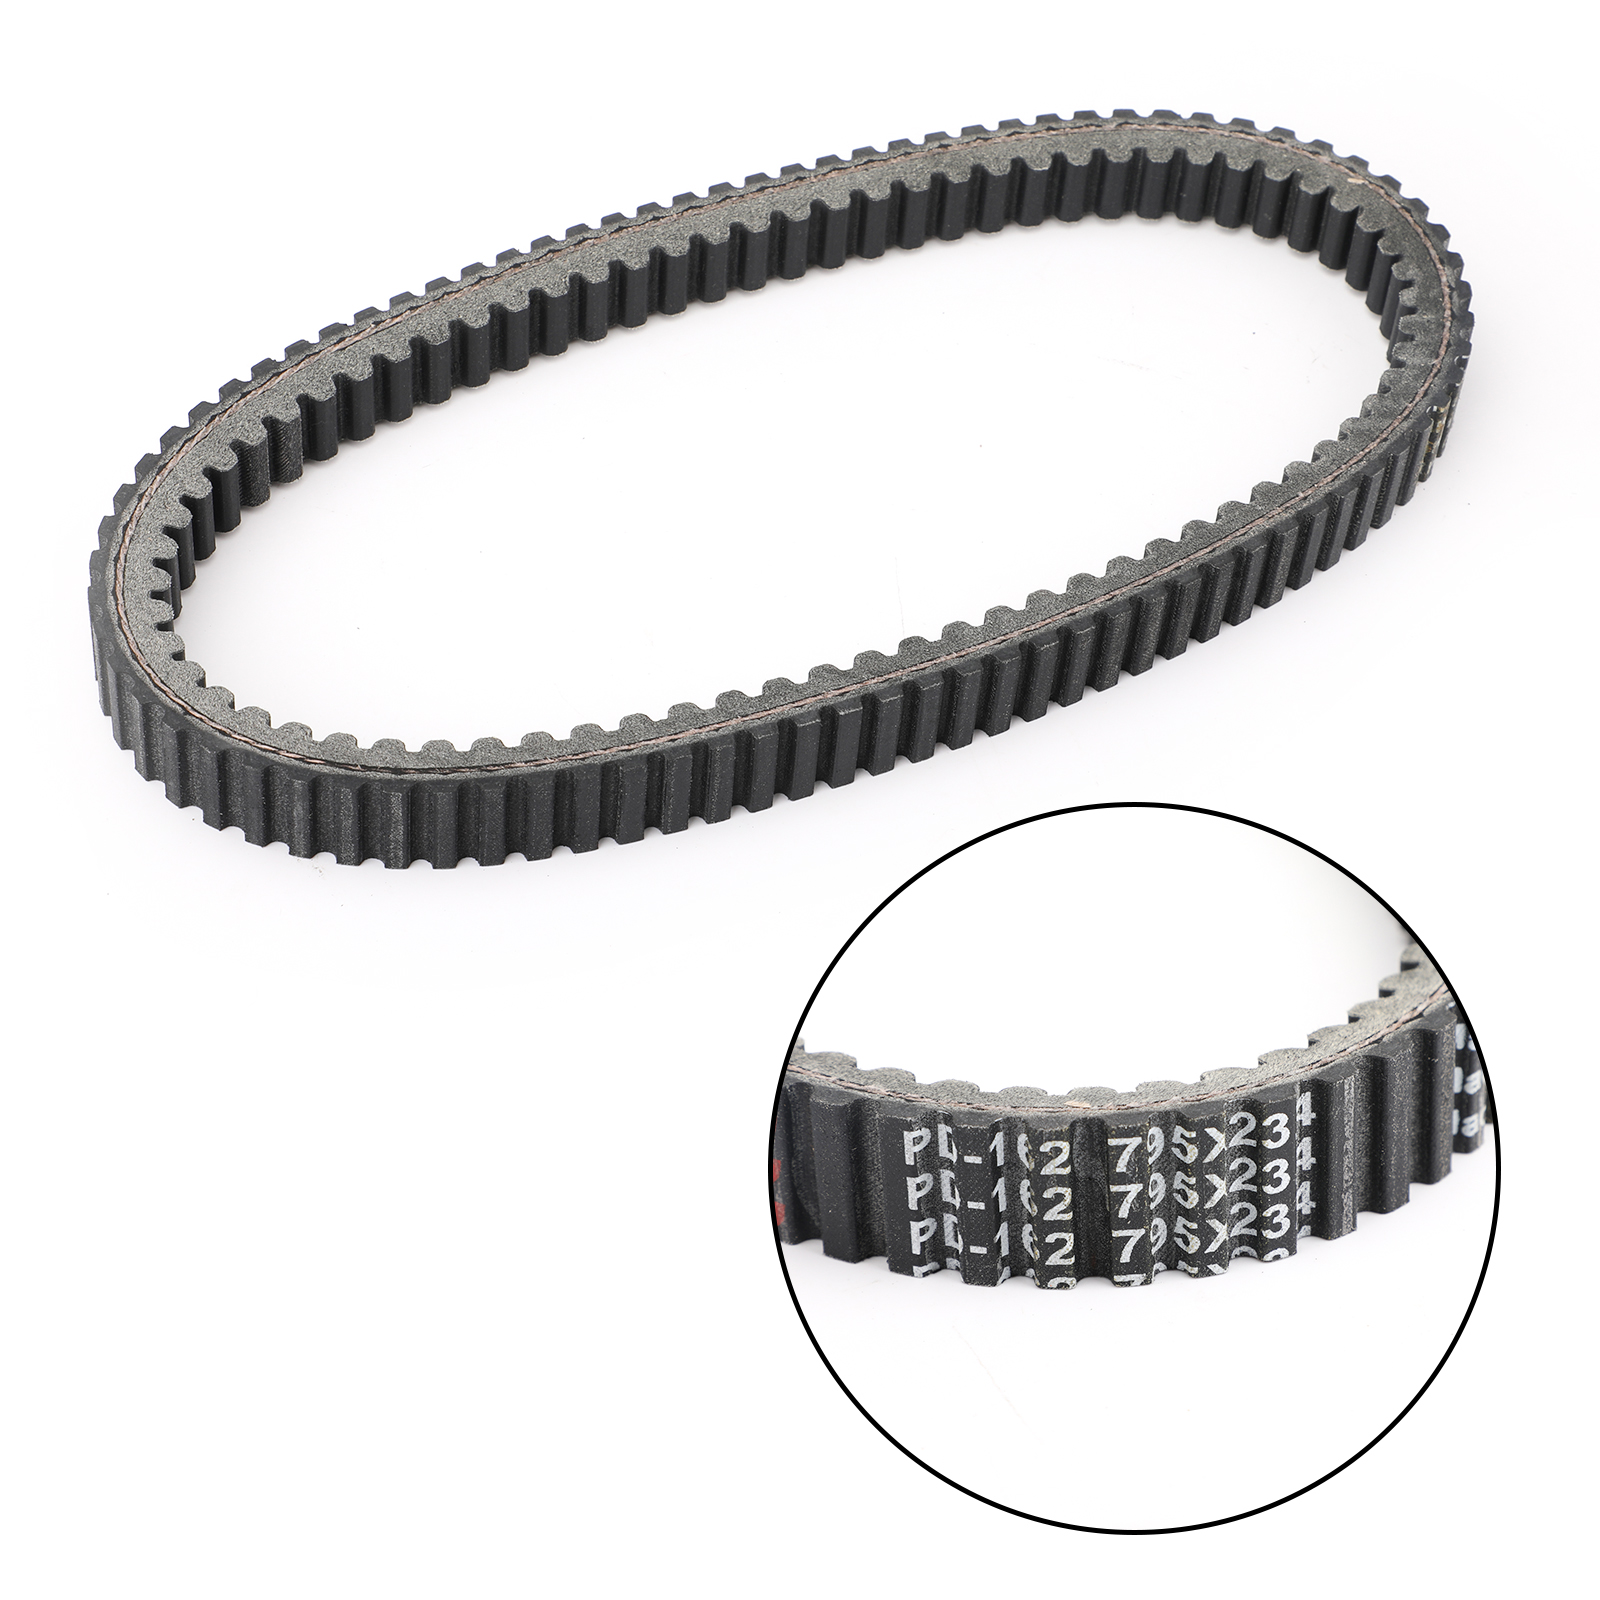 Areyourshop Motorcycle Drive Belt 943OC X 33W For CAN-AM Outlander 330 400 450 Defender 450 2004-2019 Motorcycle Accessorie